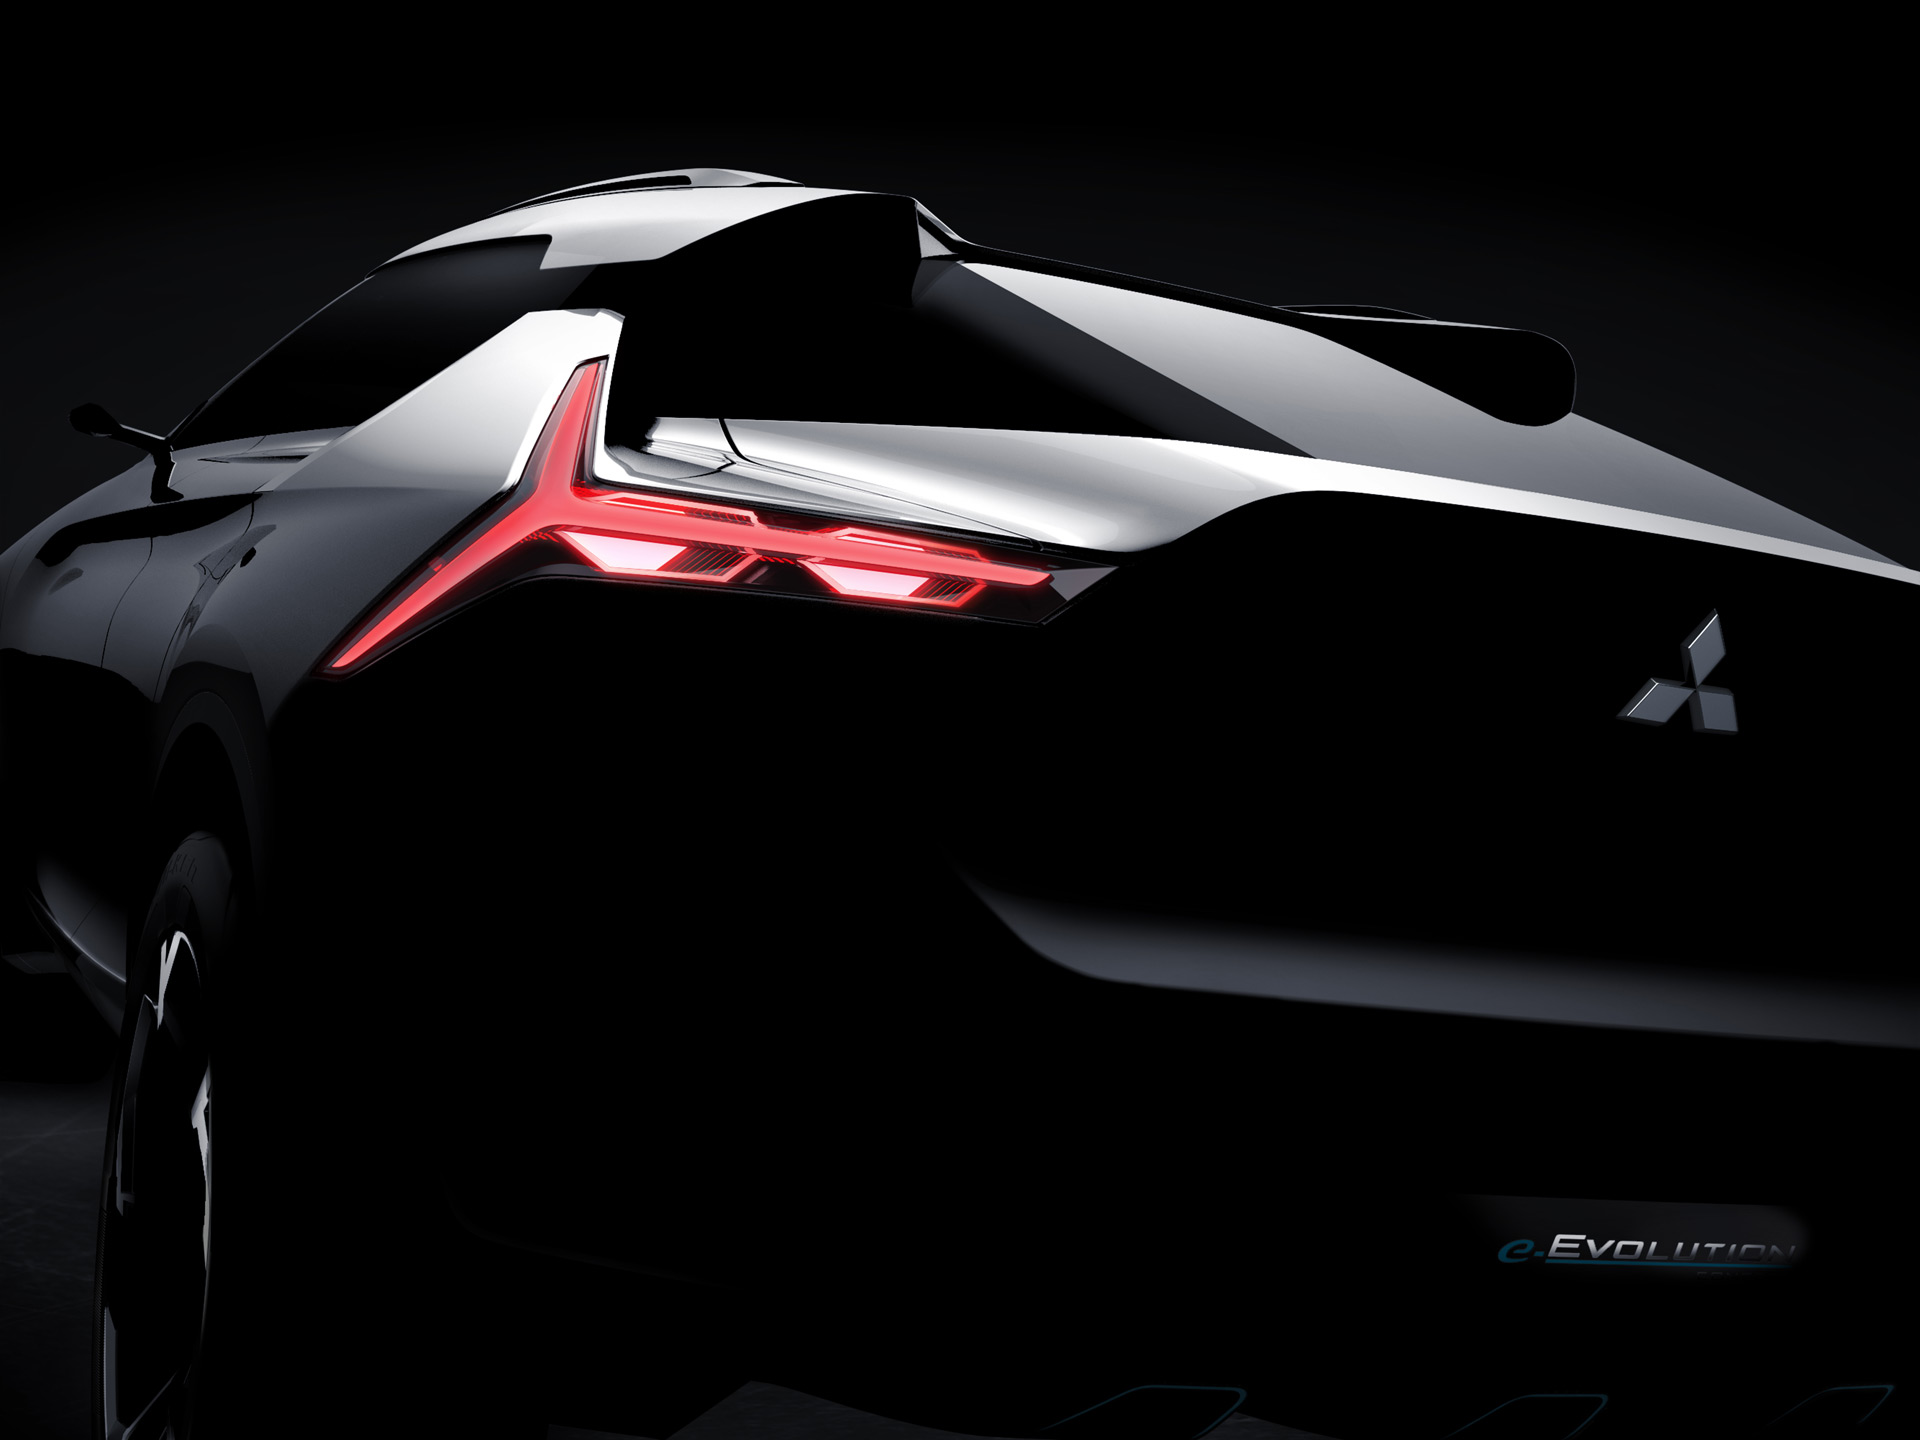 A Mitsubishi Evo Concept Is Coming And Its An Electric SUV